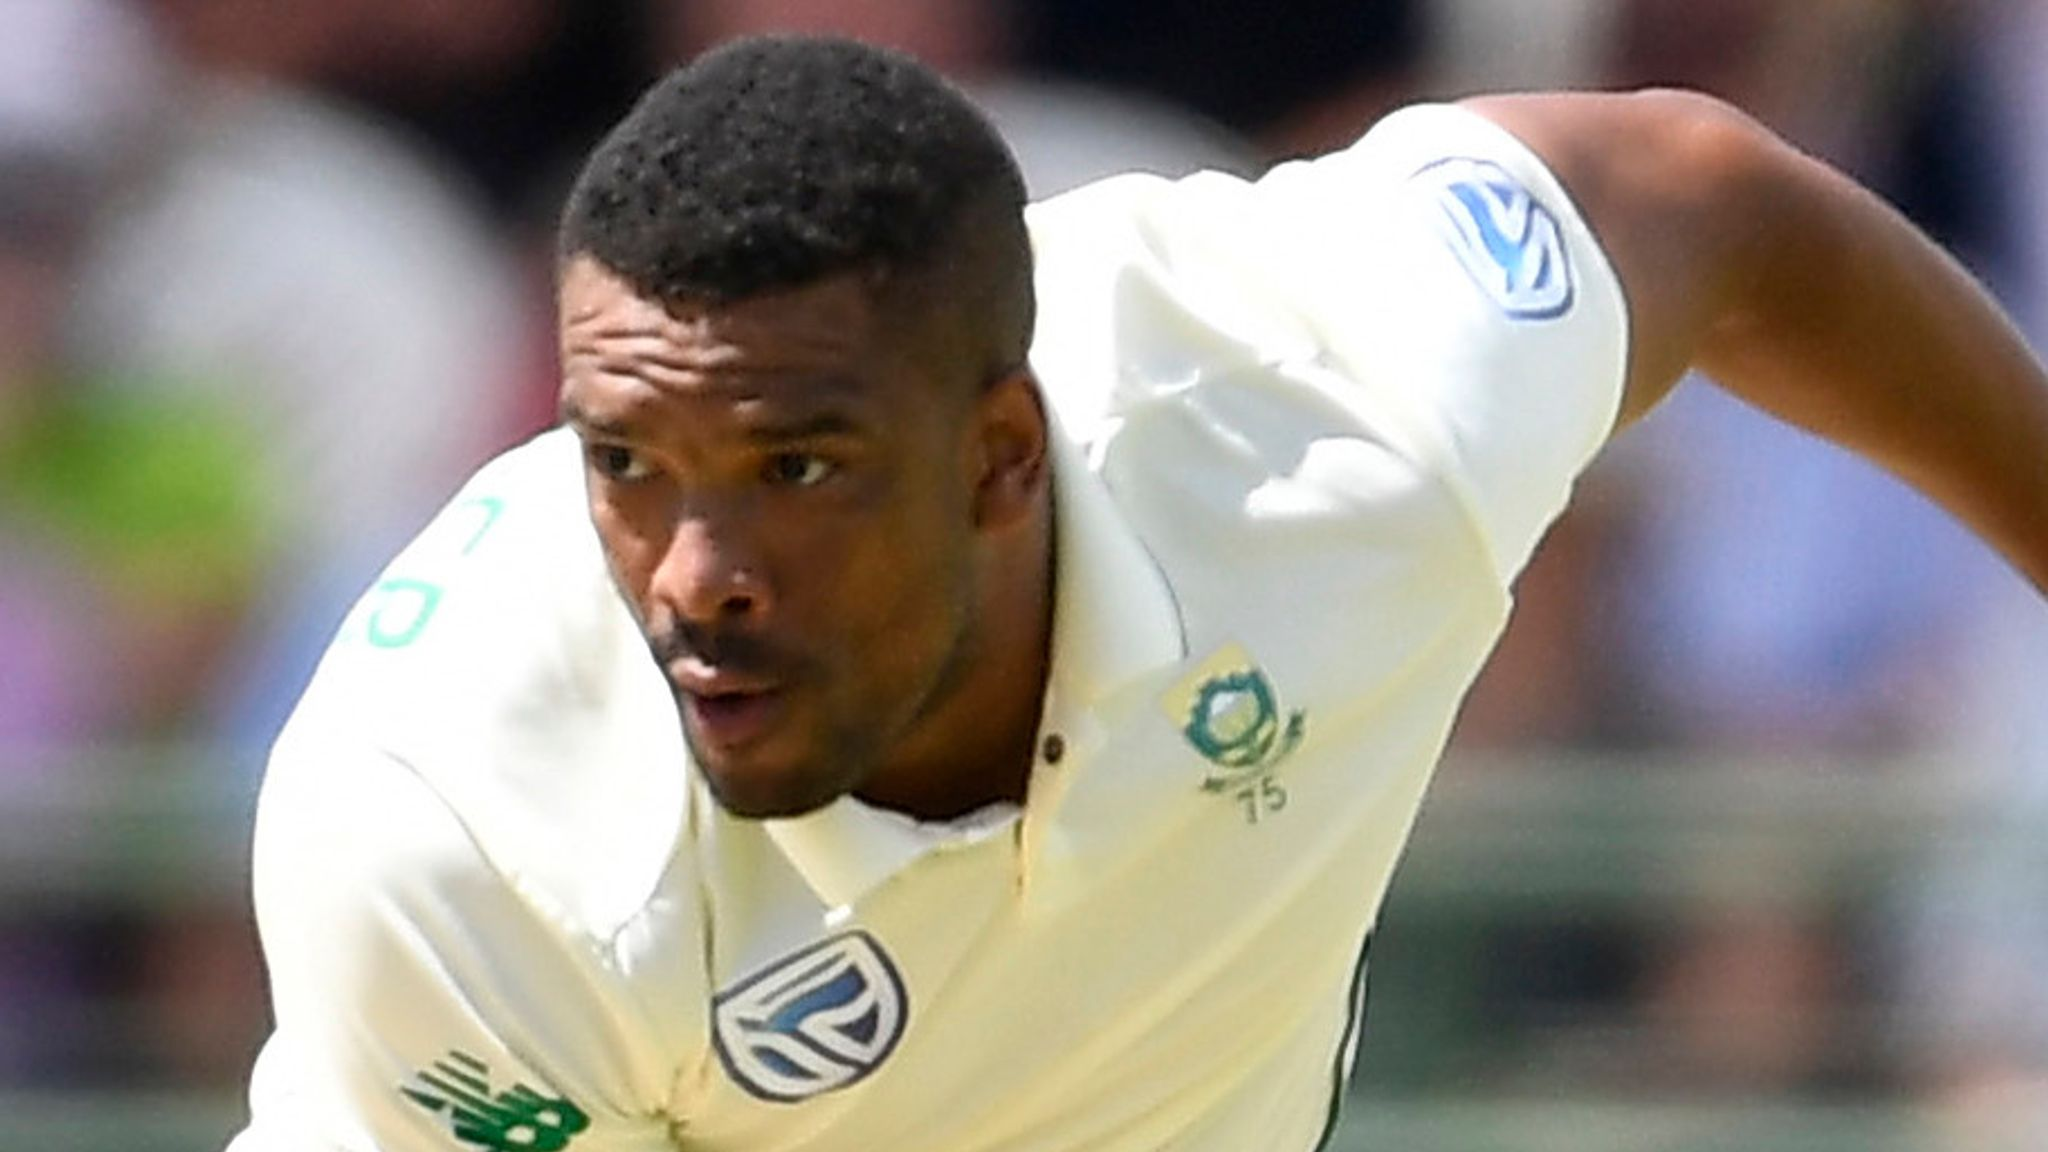 South Africa's Vernon Philander fined for inappropriate language after dismissing Jos Buttler